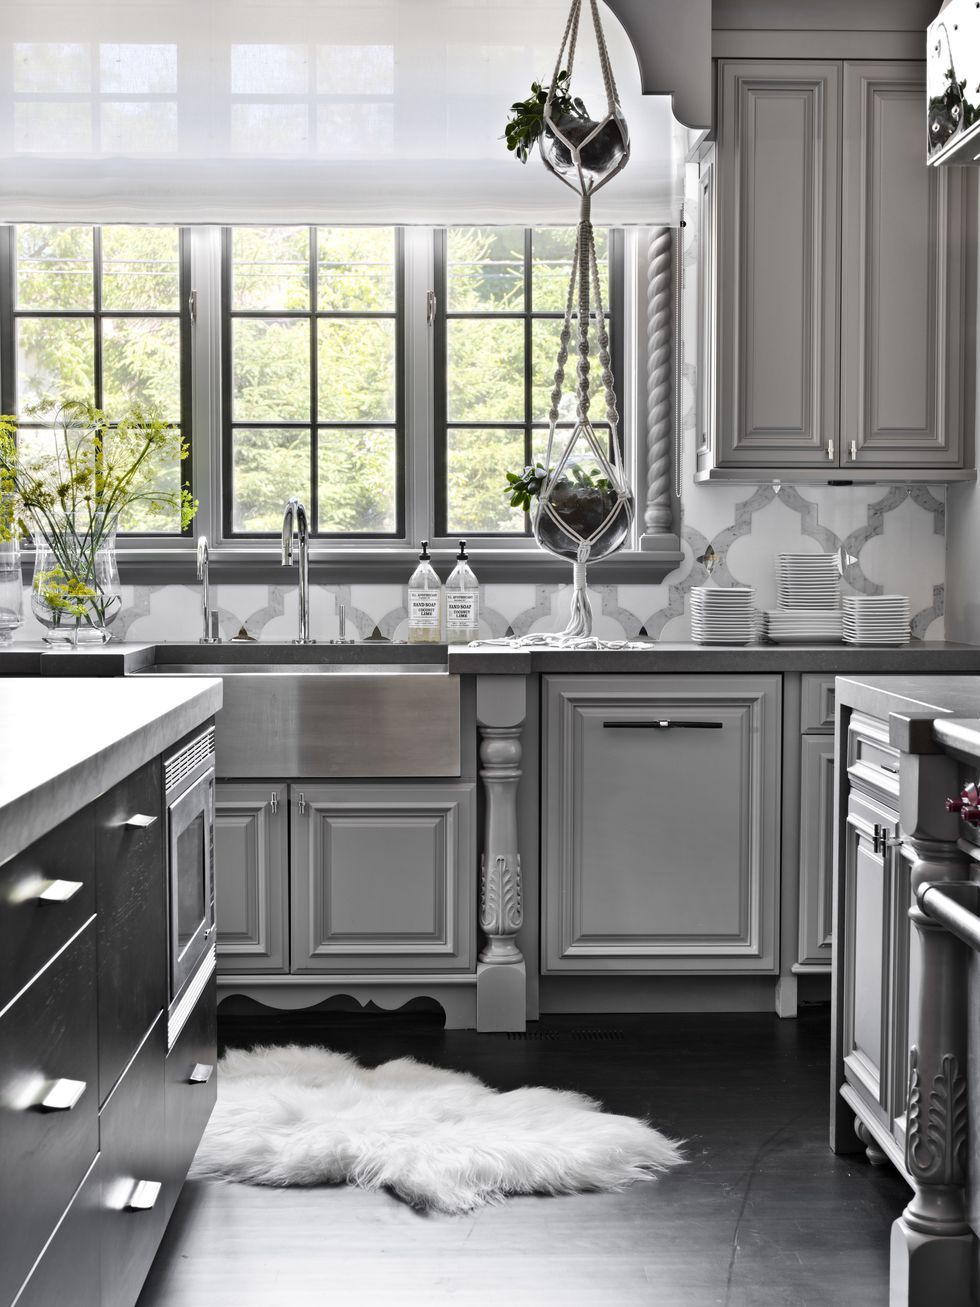 White Kitchen Backsplash Images